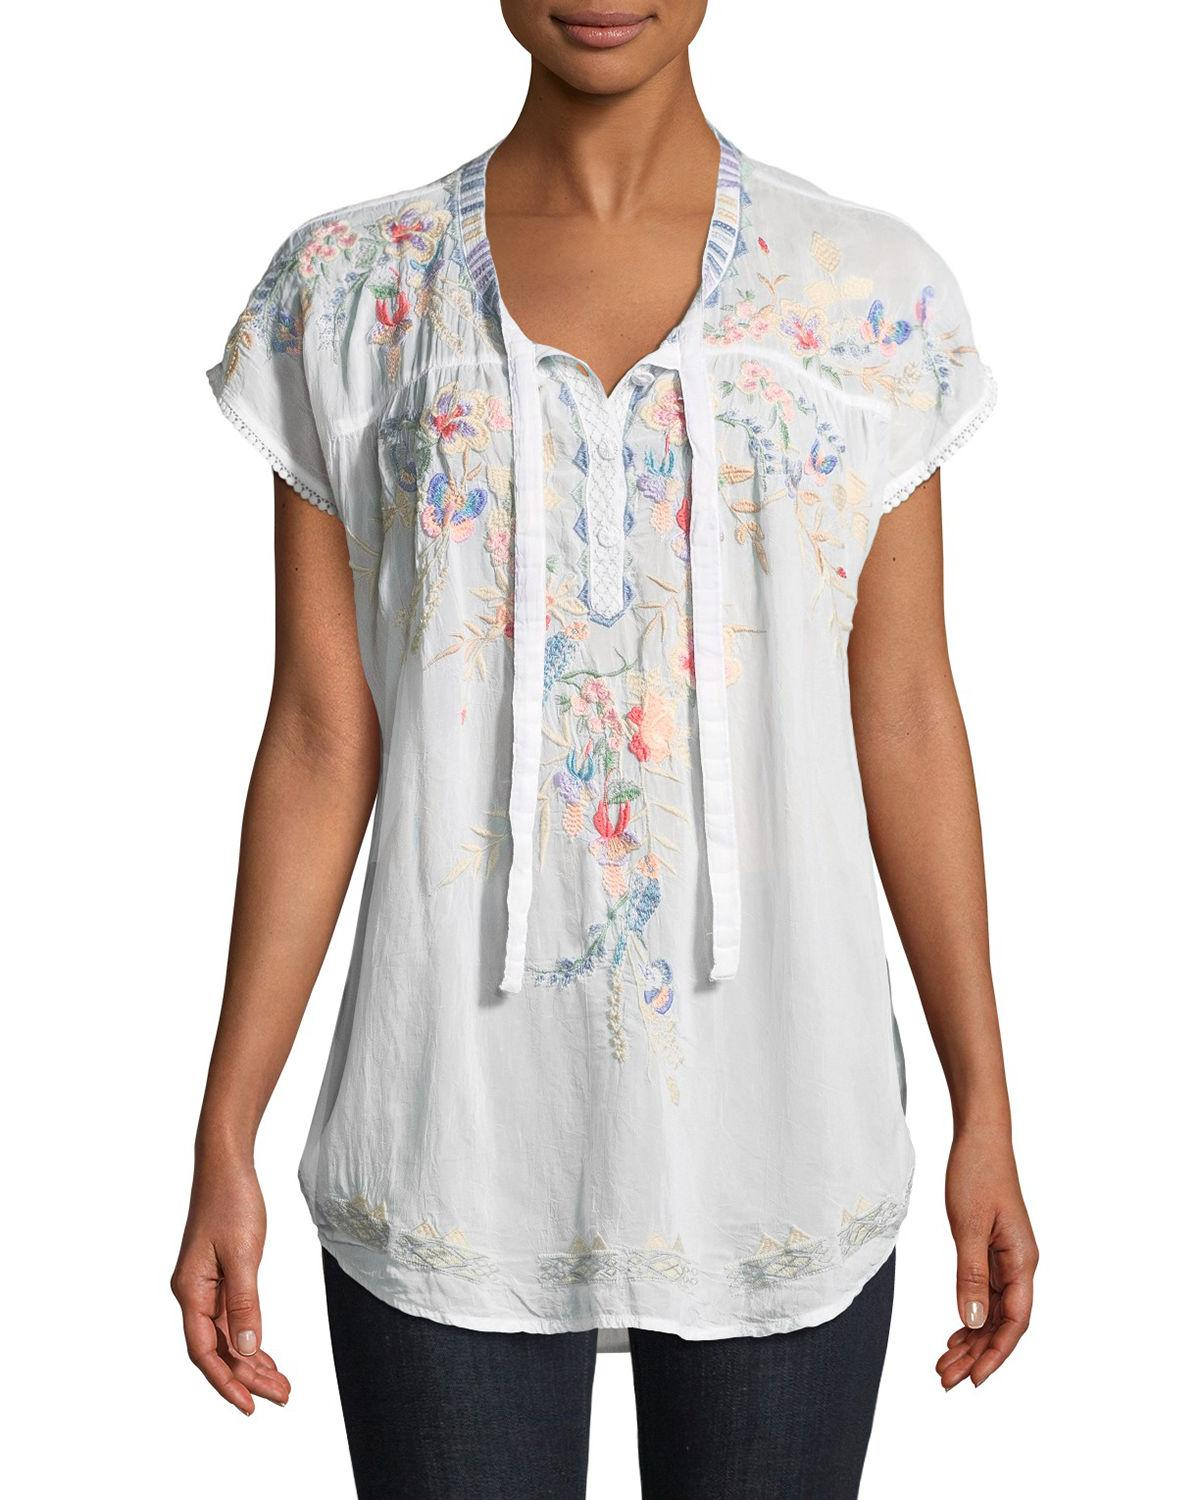 Johnny Was Dreaming Embroidered Tie-front Blouse, Plus Size In White